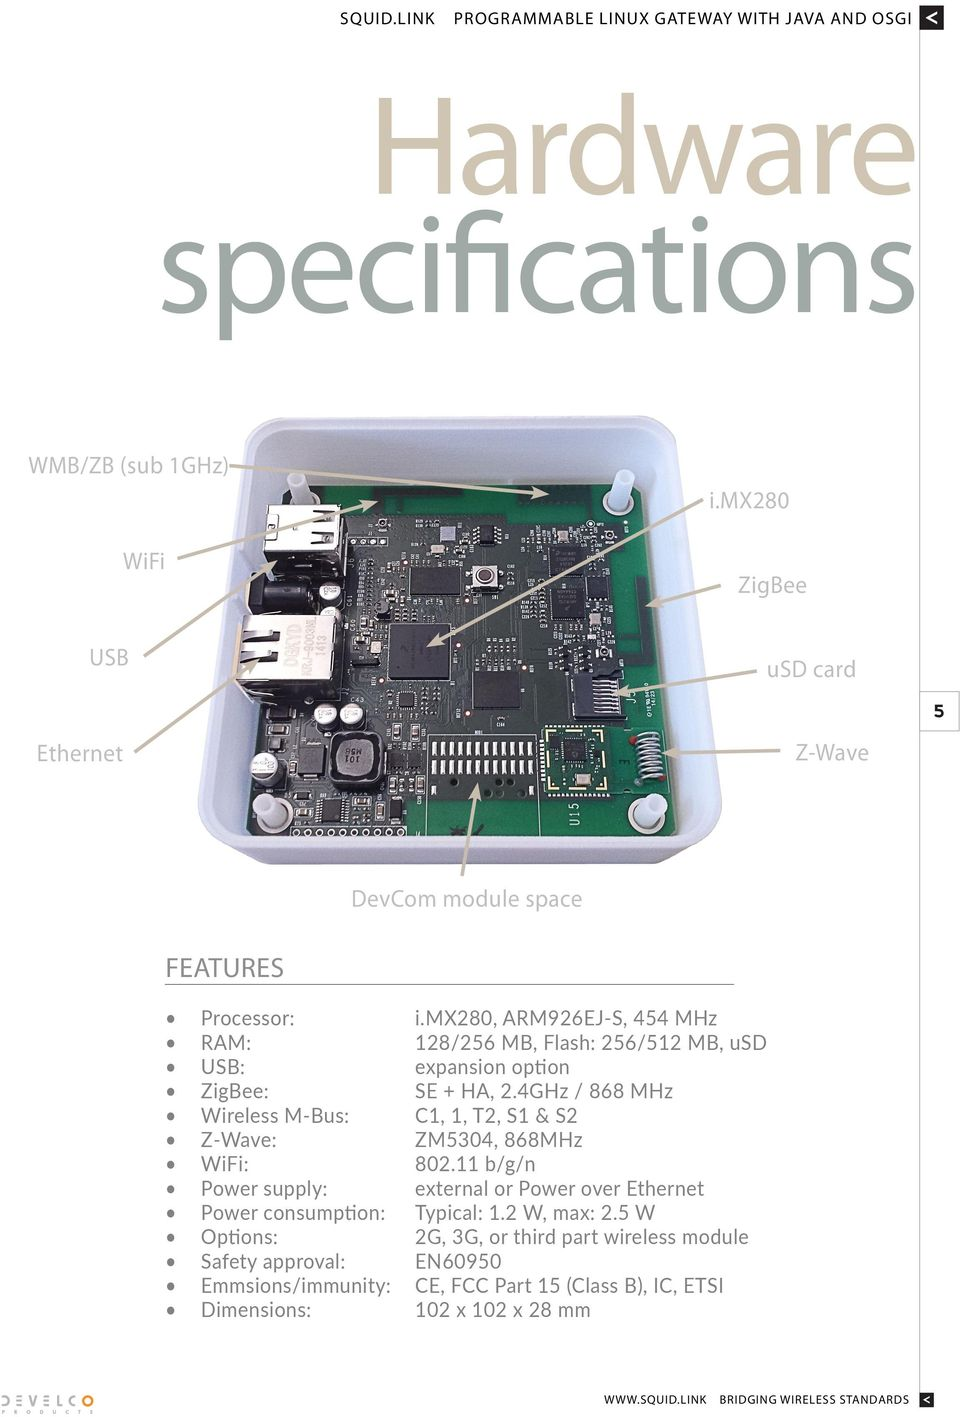 mx280, ARM926EJ-S, 454 MHz RAM: 128/256 MB, Flash: 256/512 MB, usd USB: expansion option ZigBee: SE + HA, 2.